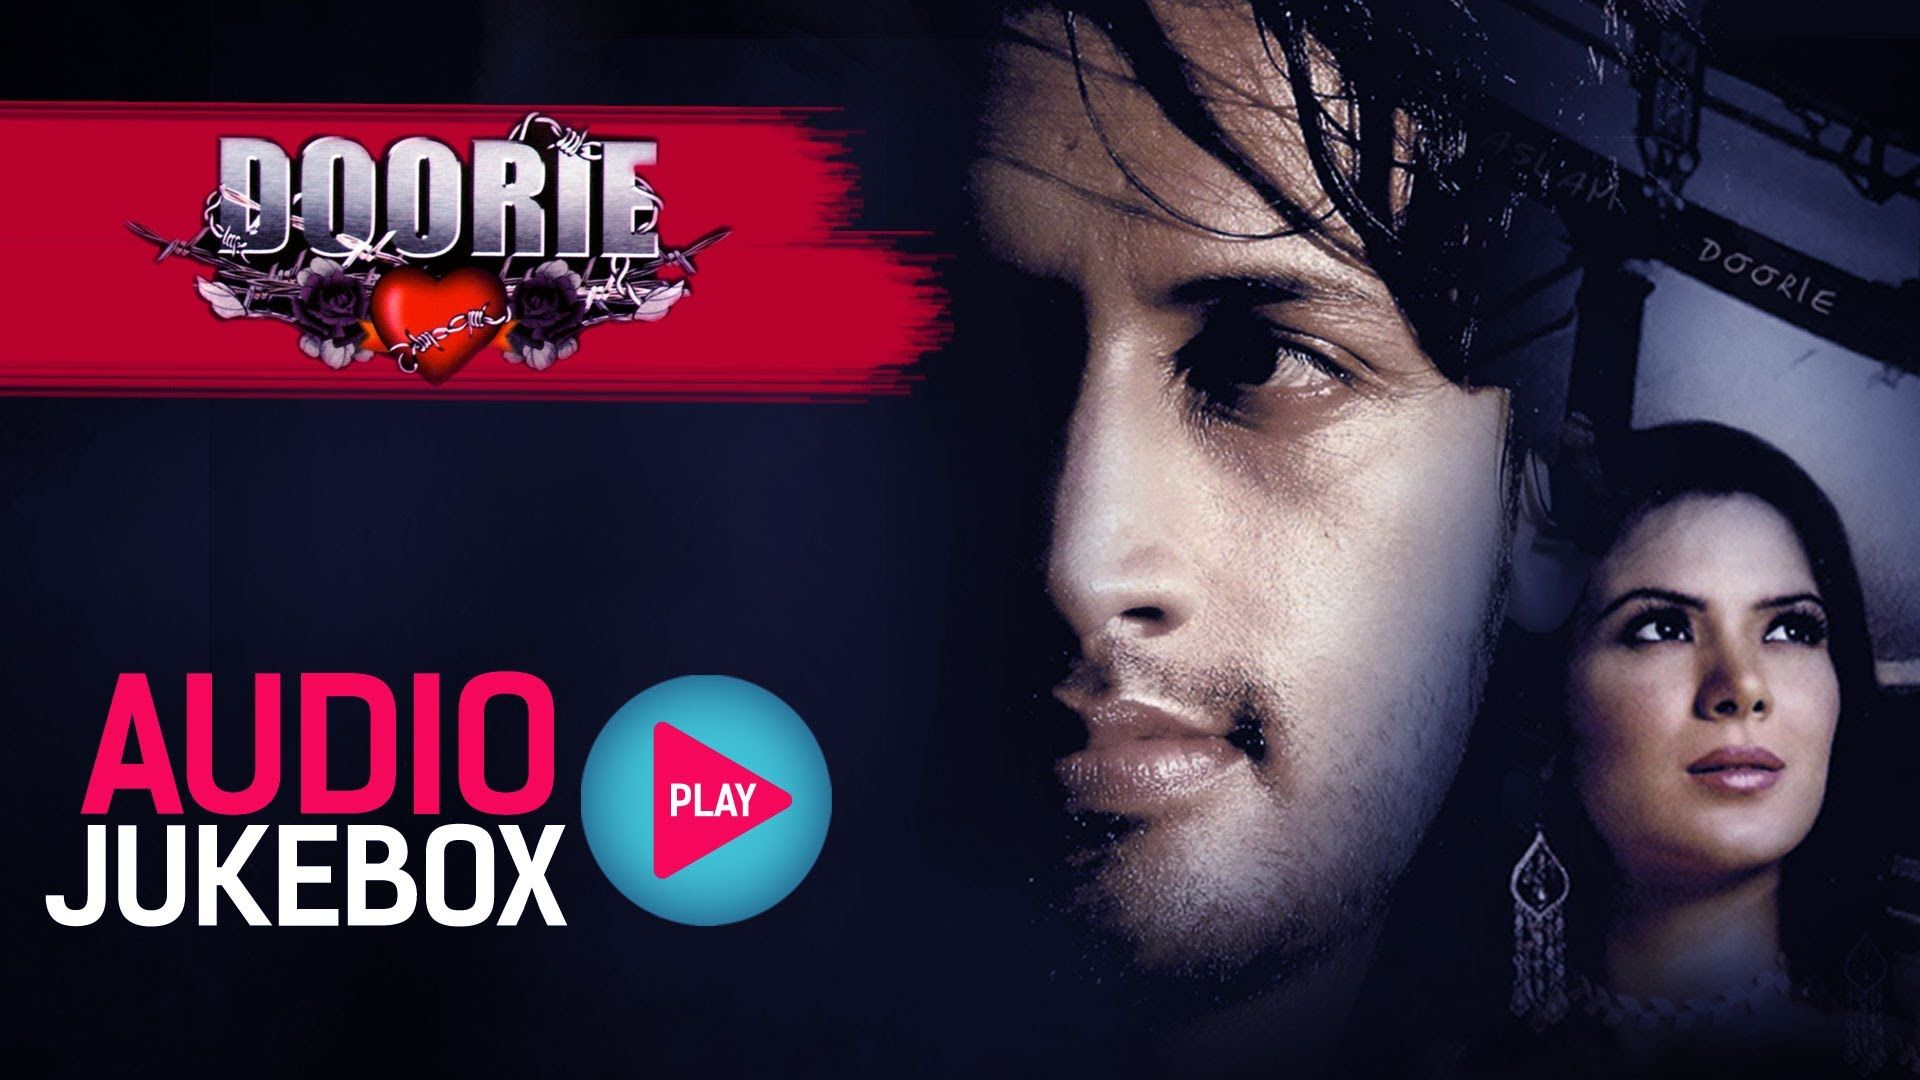 atif aslam doorie full album mp3 free download